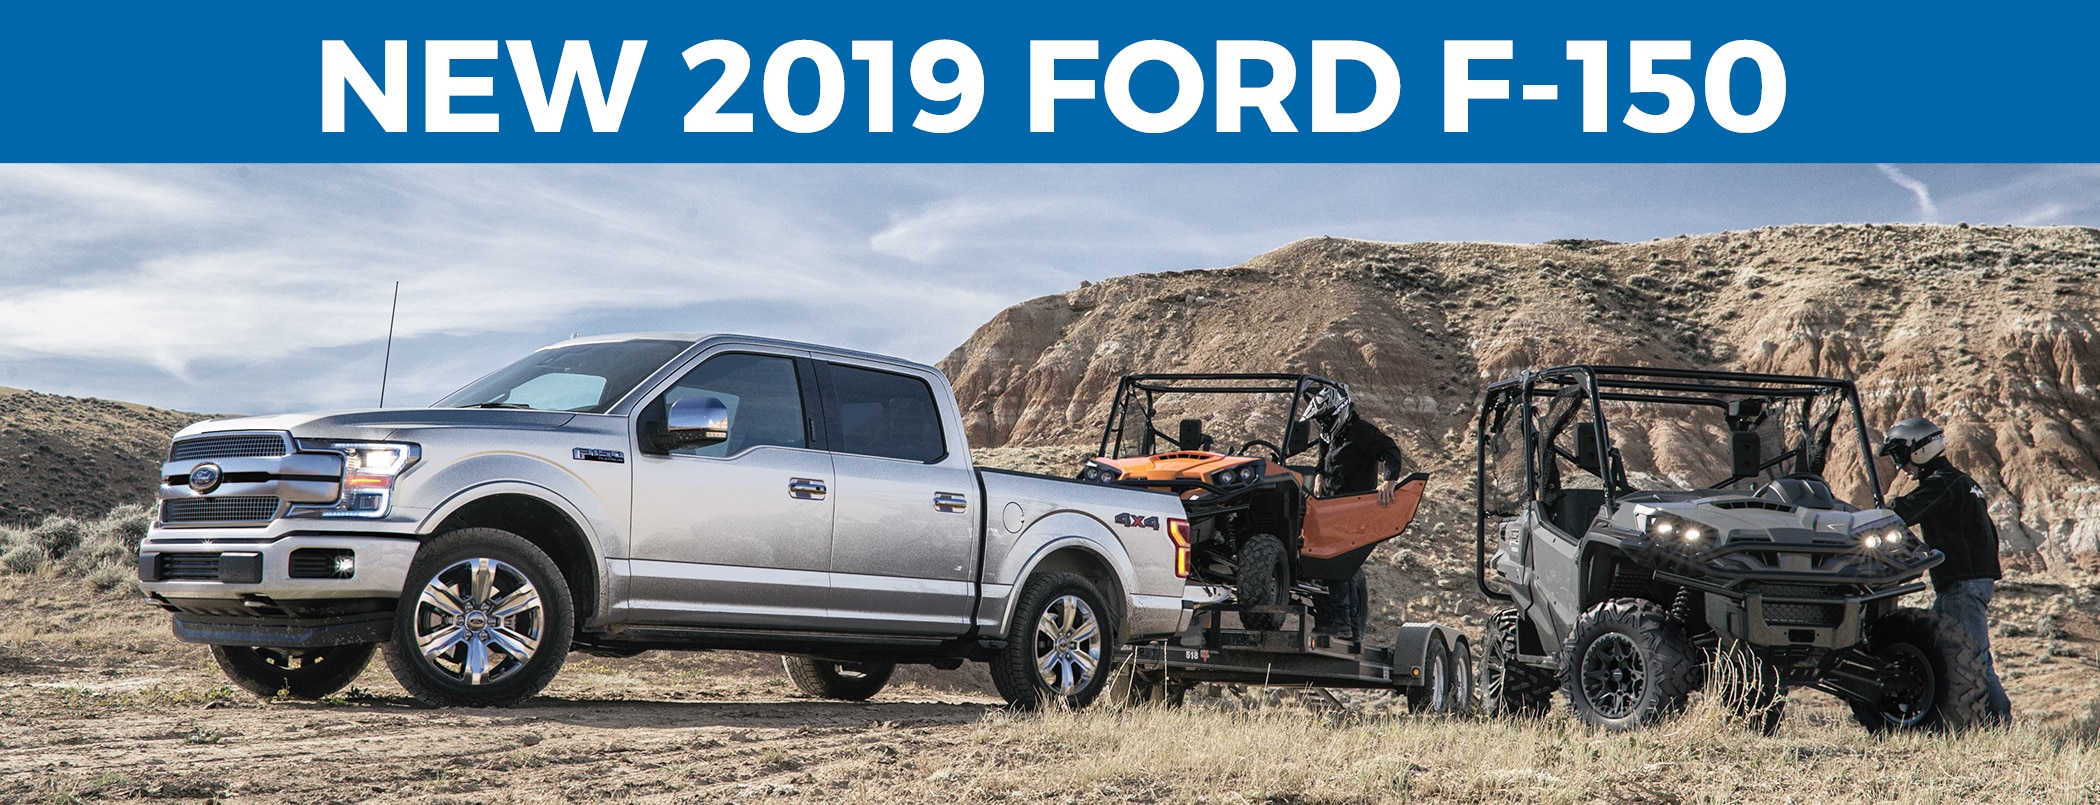 2019 Ford F-150 Review Draper